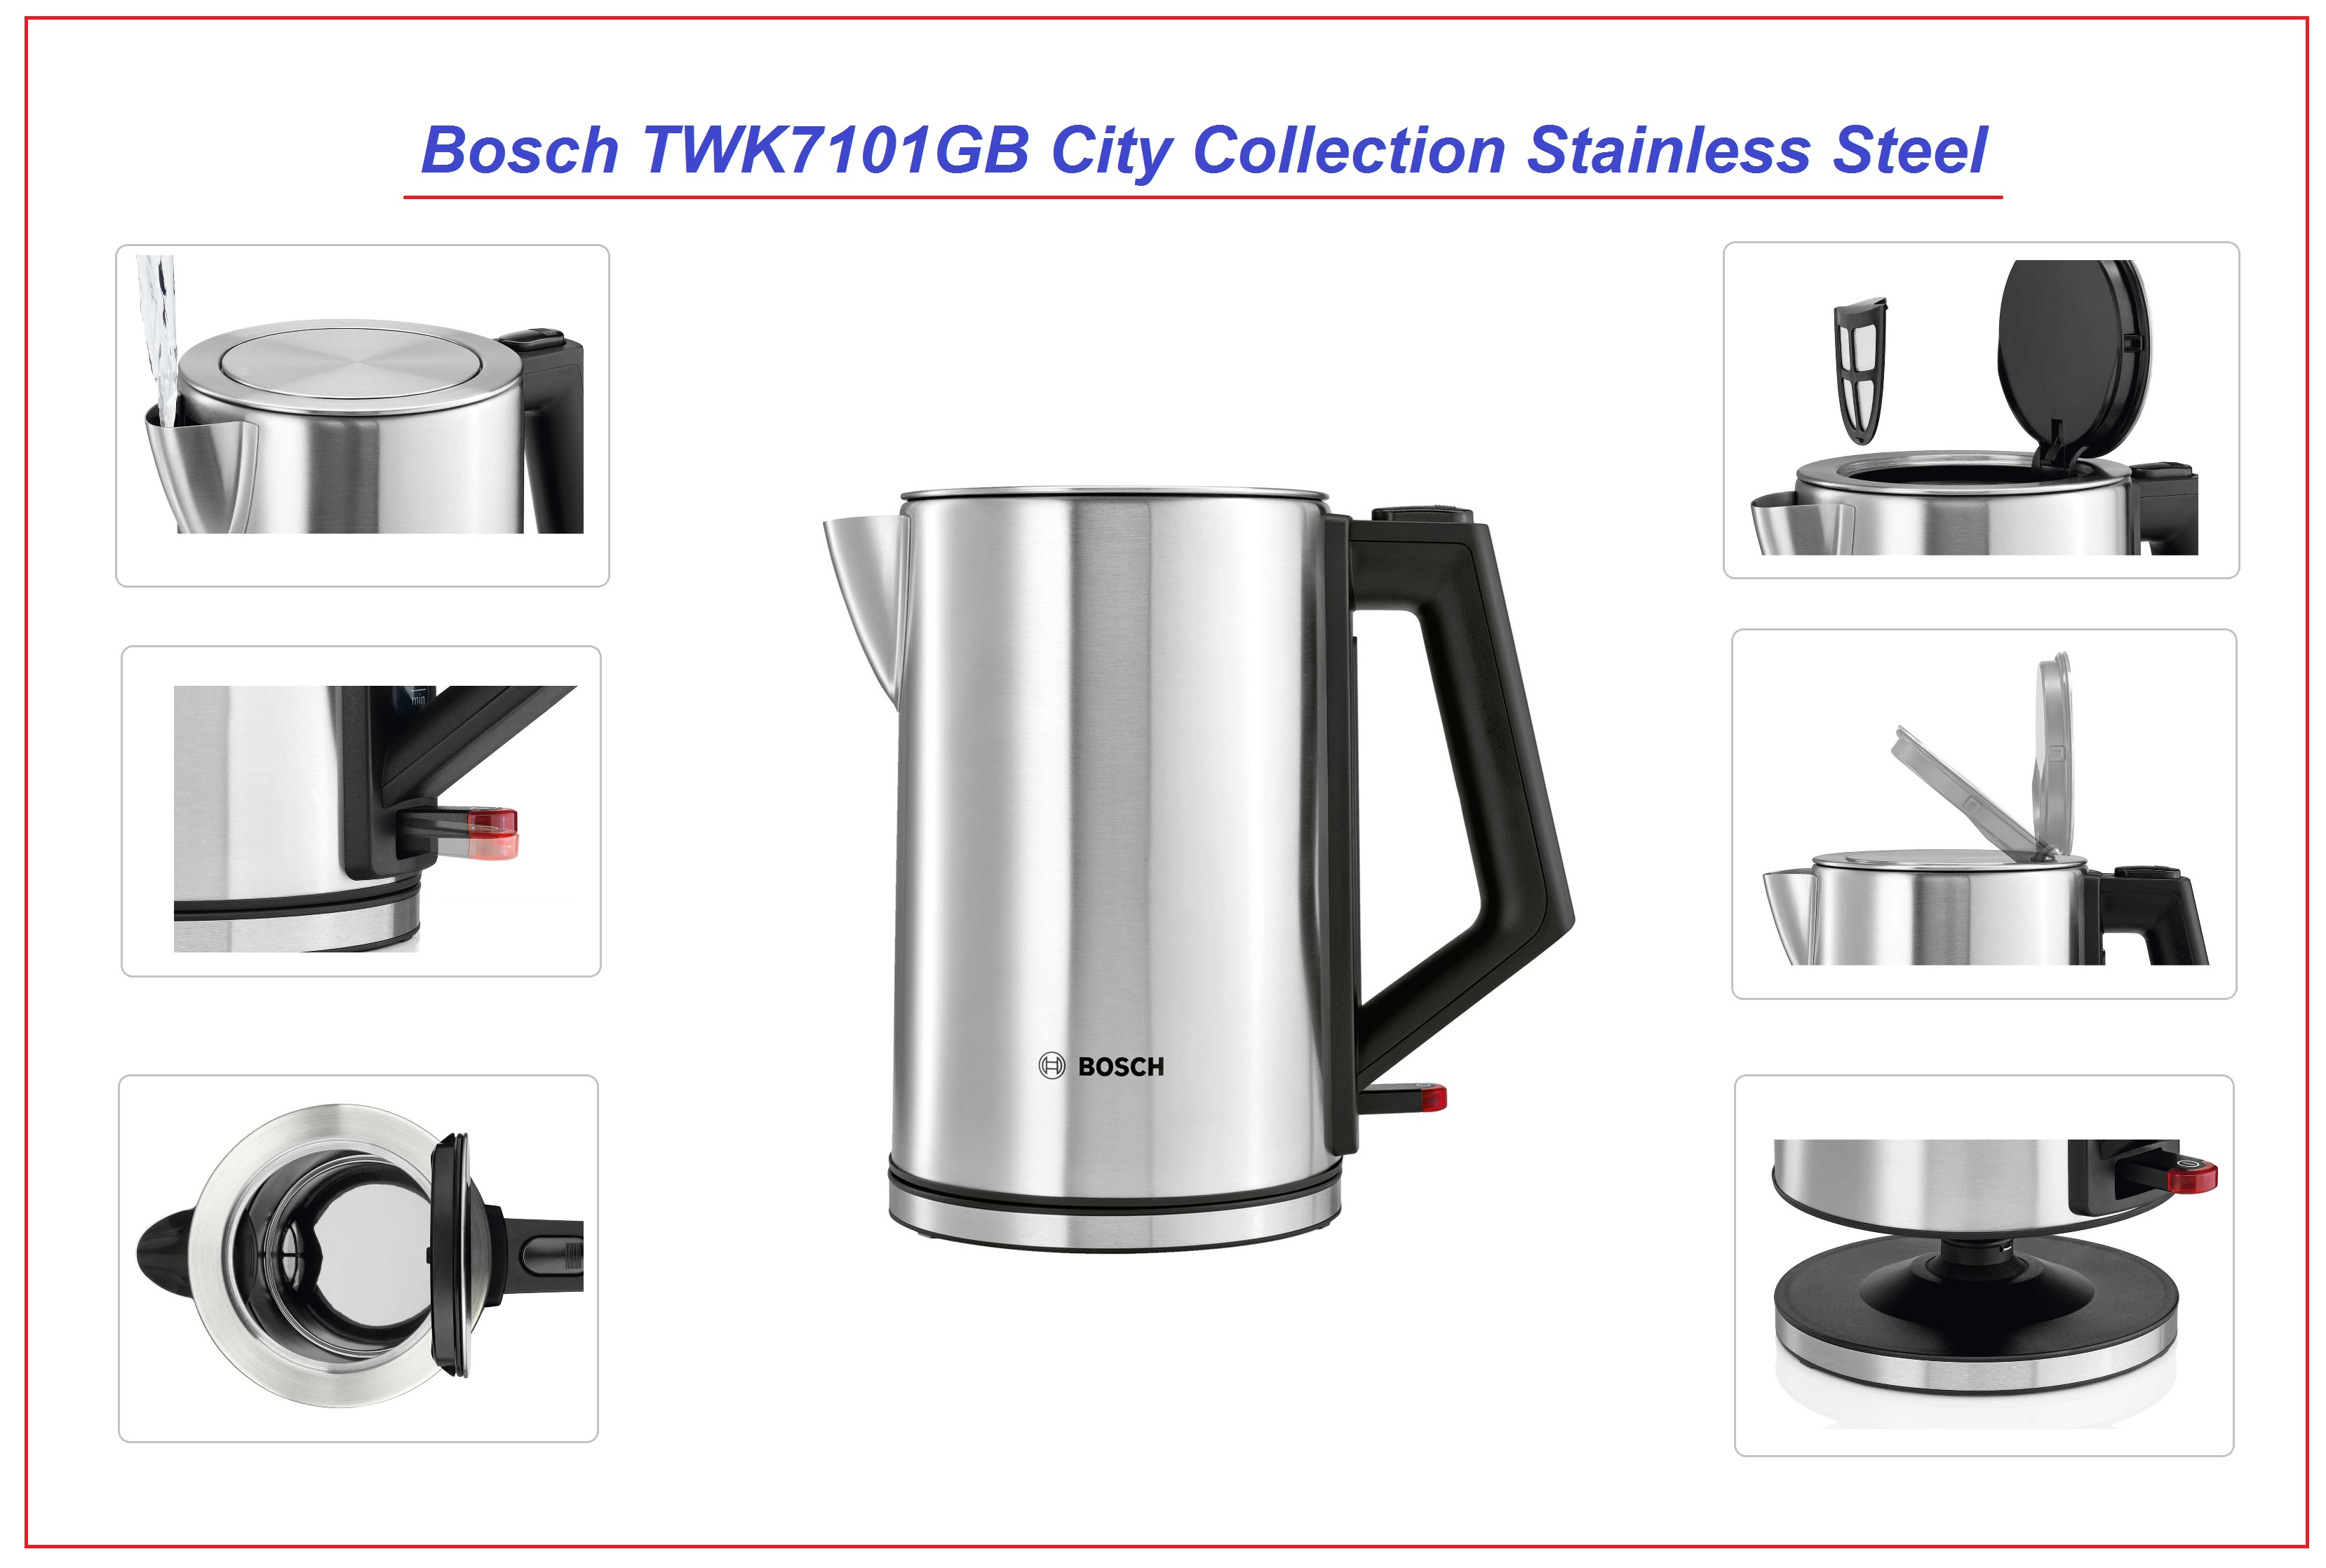 bosch twk7101gb city collection stainless steel kettle 1. Black Bedroom Furniture Sets. Home Design Ideas